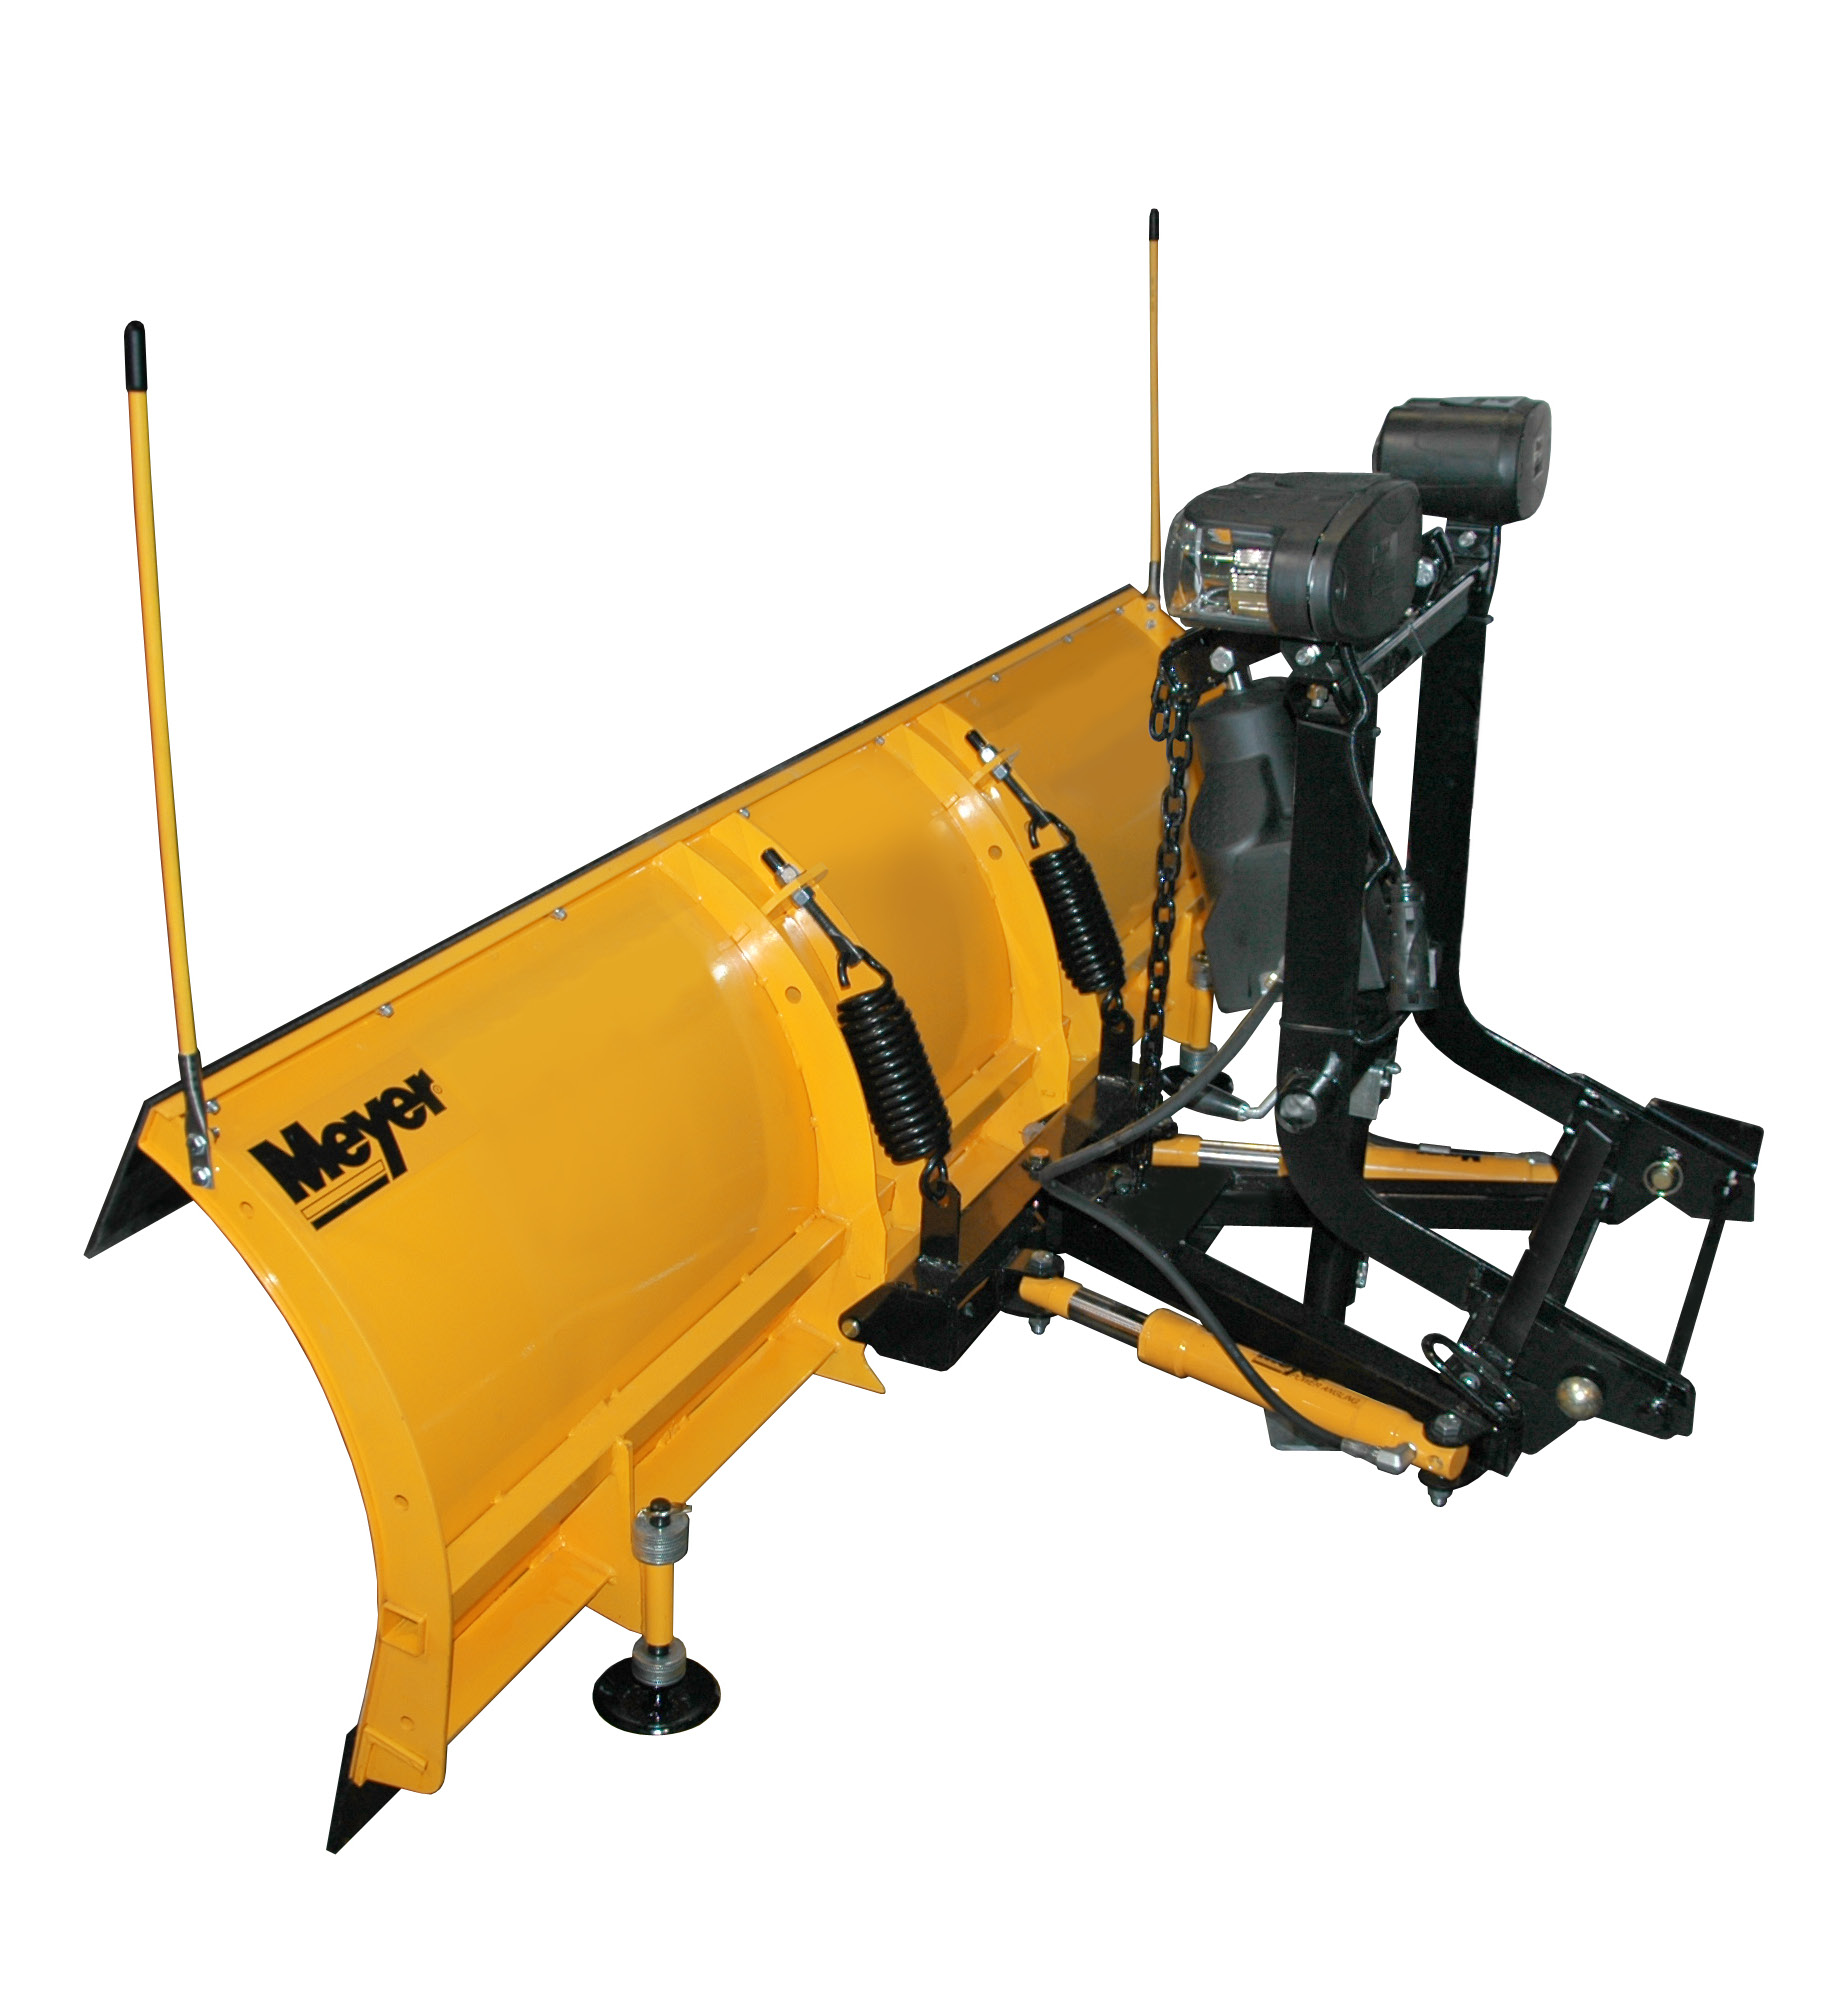 Ez Build Assembly And Installation Dp Plow With E 58h 12v Hydraulic Meyers Wiring Schematic Change Construction Or Design Details Specifications Prices Without Notice Incurring Any Obligation